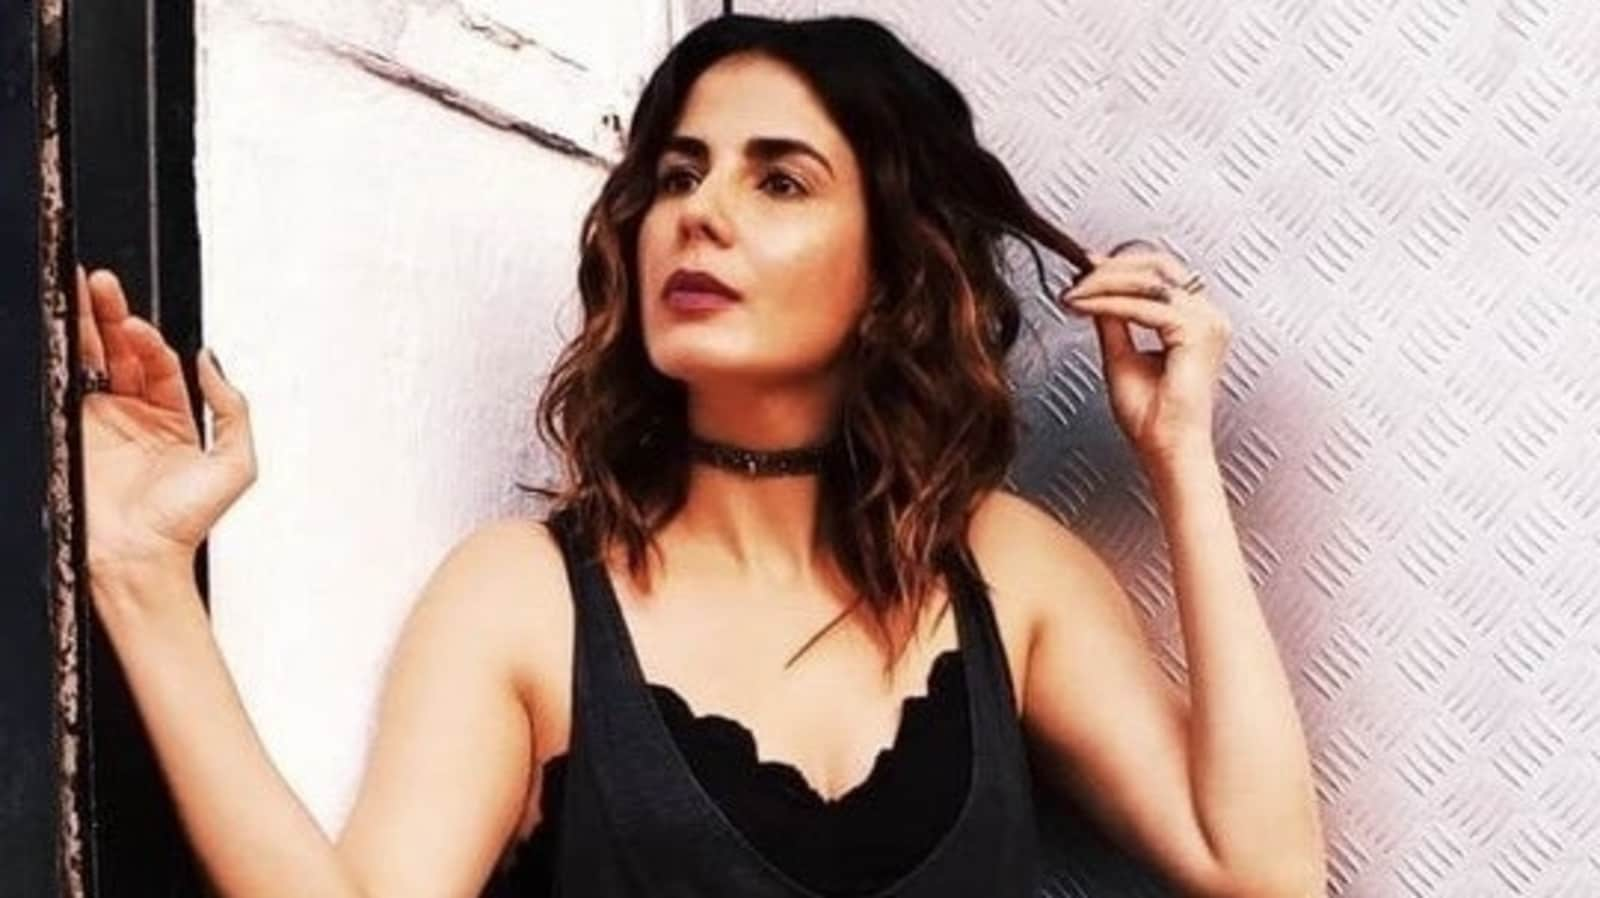 Kirti Kulhari recalls being replaced in a film overnight while battling depression: 'It just shook me up' - Hindustan Times